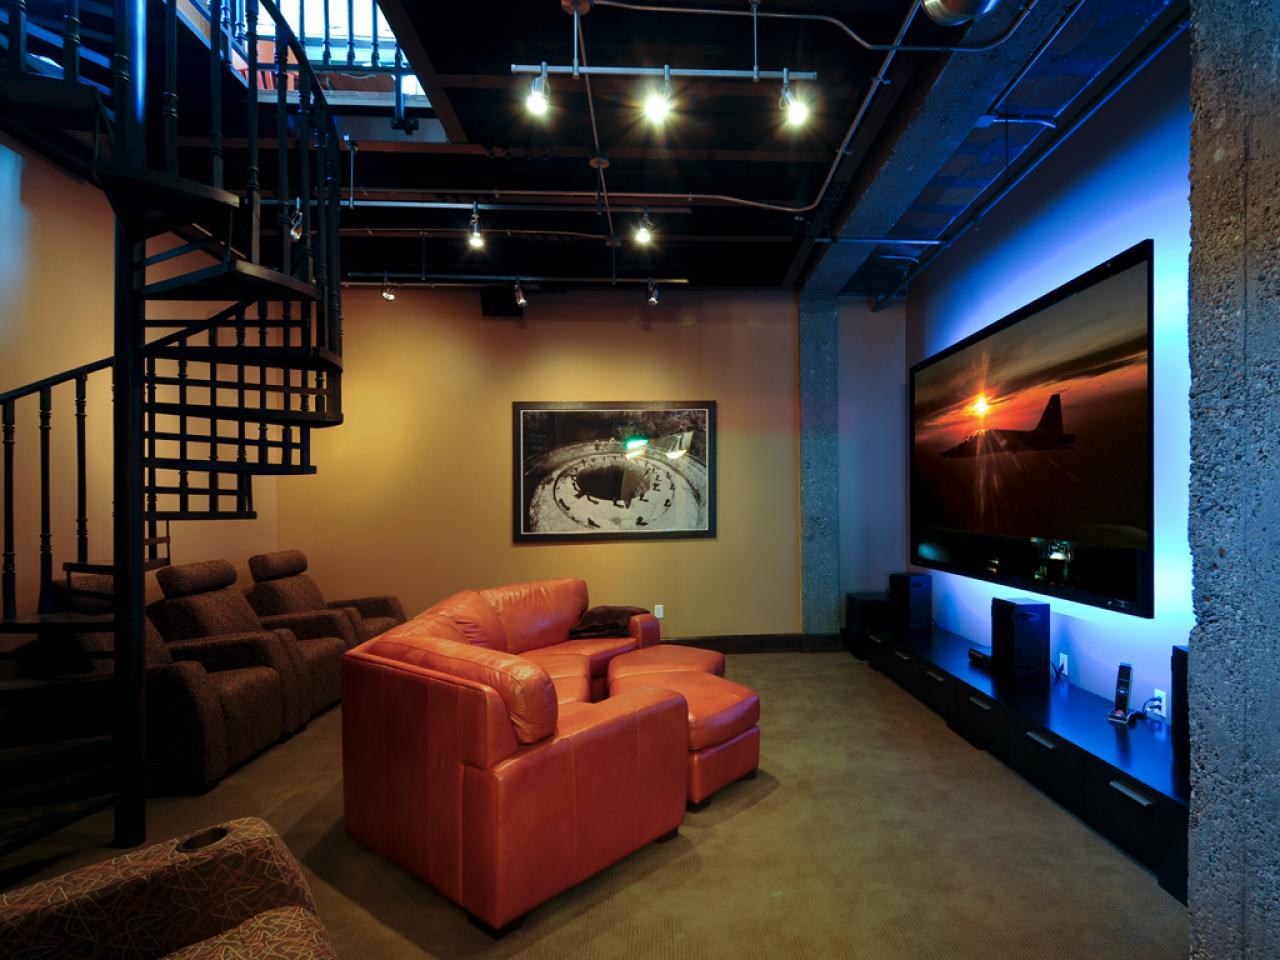 Home Basement Designs Classy Basement Design And Layout  Hgtv Design Inspiration